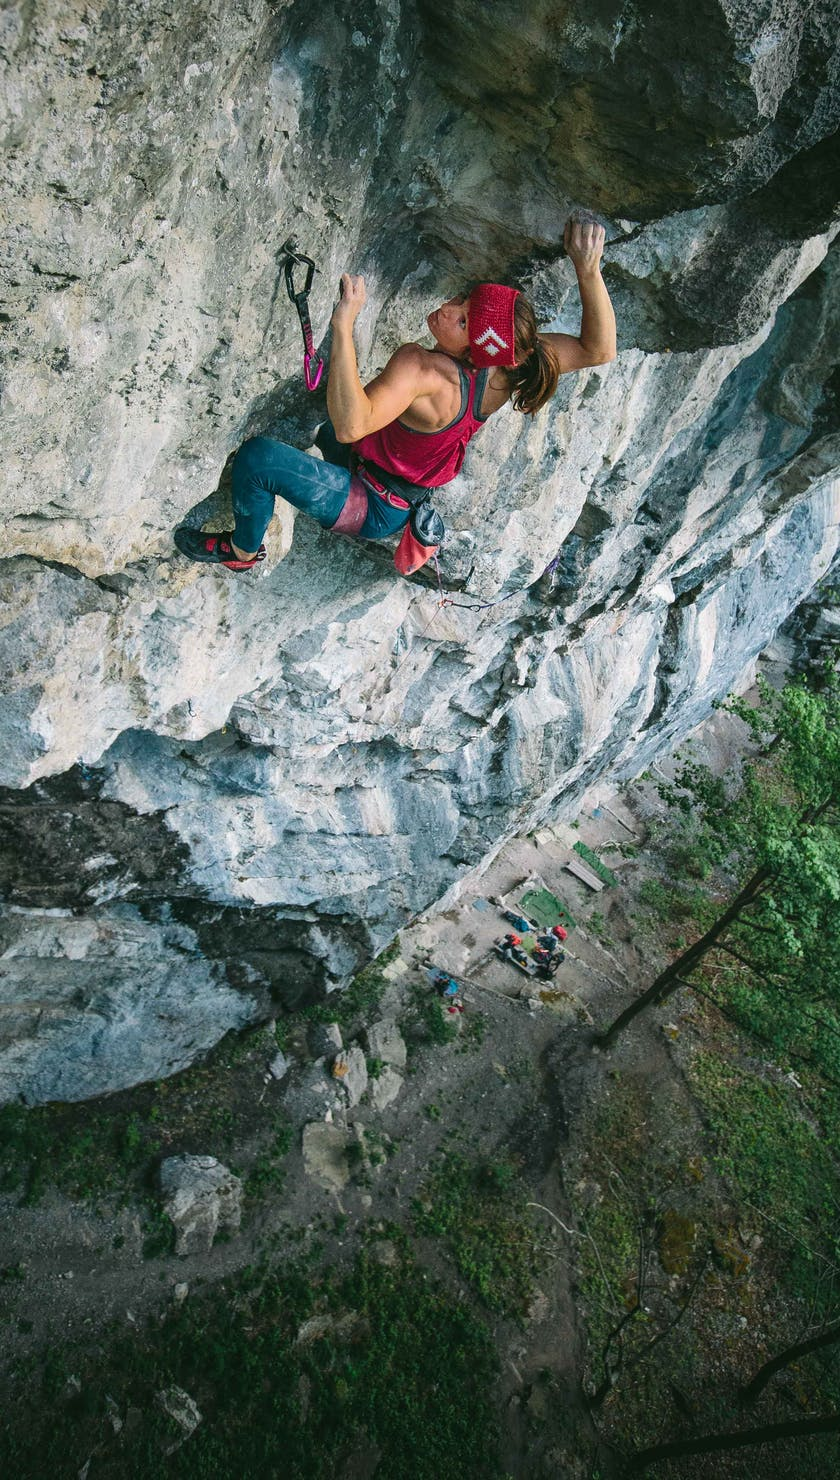 BD Athlete Babsi Zangerl sport climbing outside